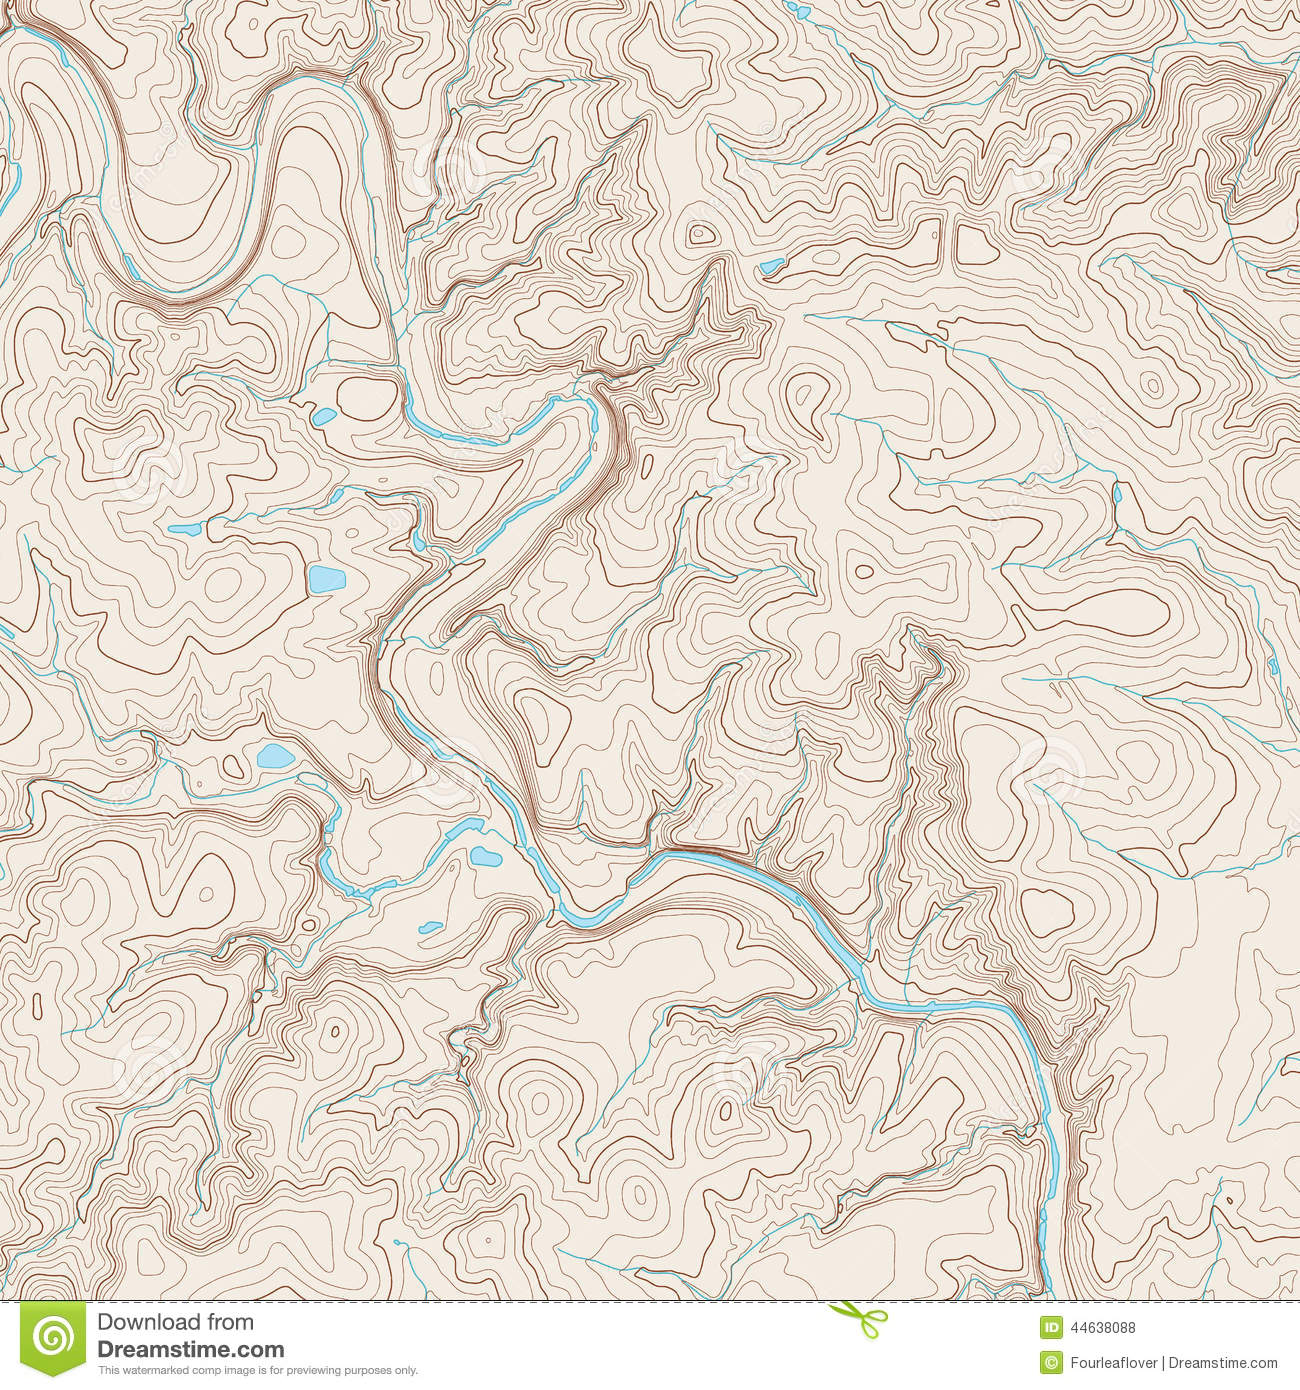 Topographic Map stock vector. Illustration of land, relief - 44638088